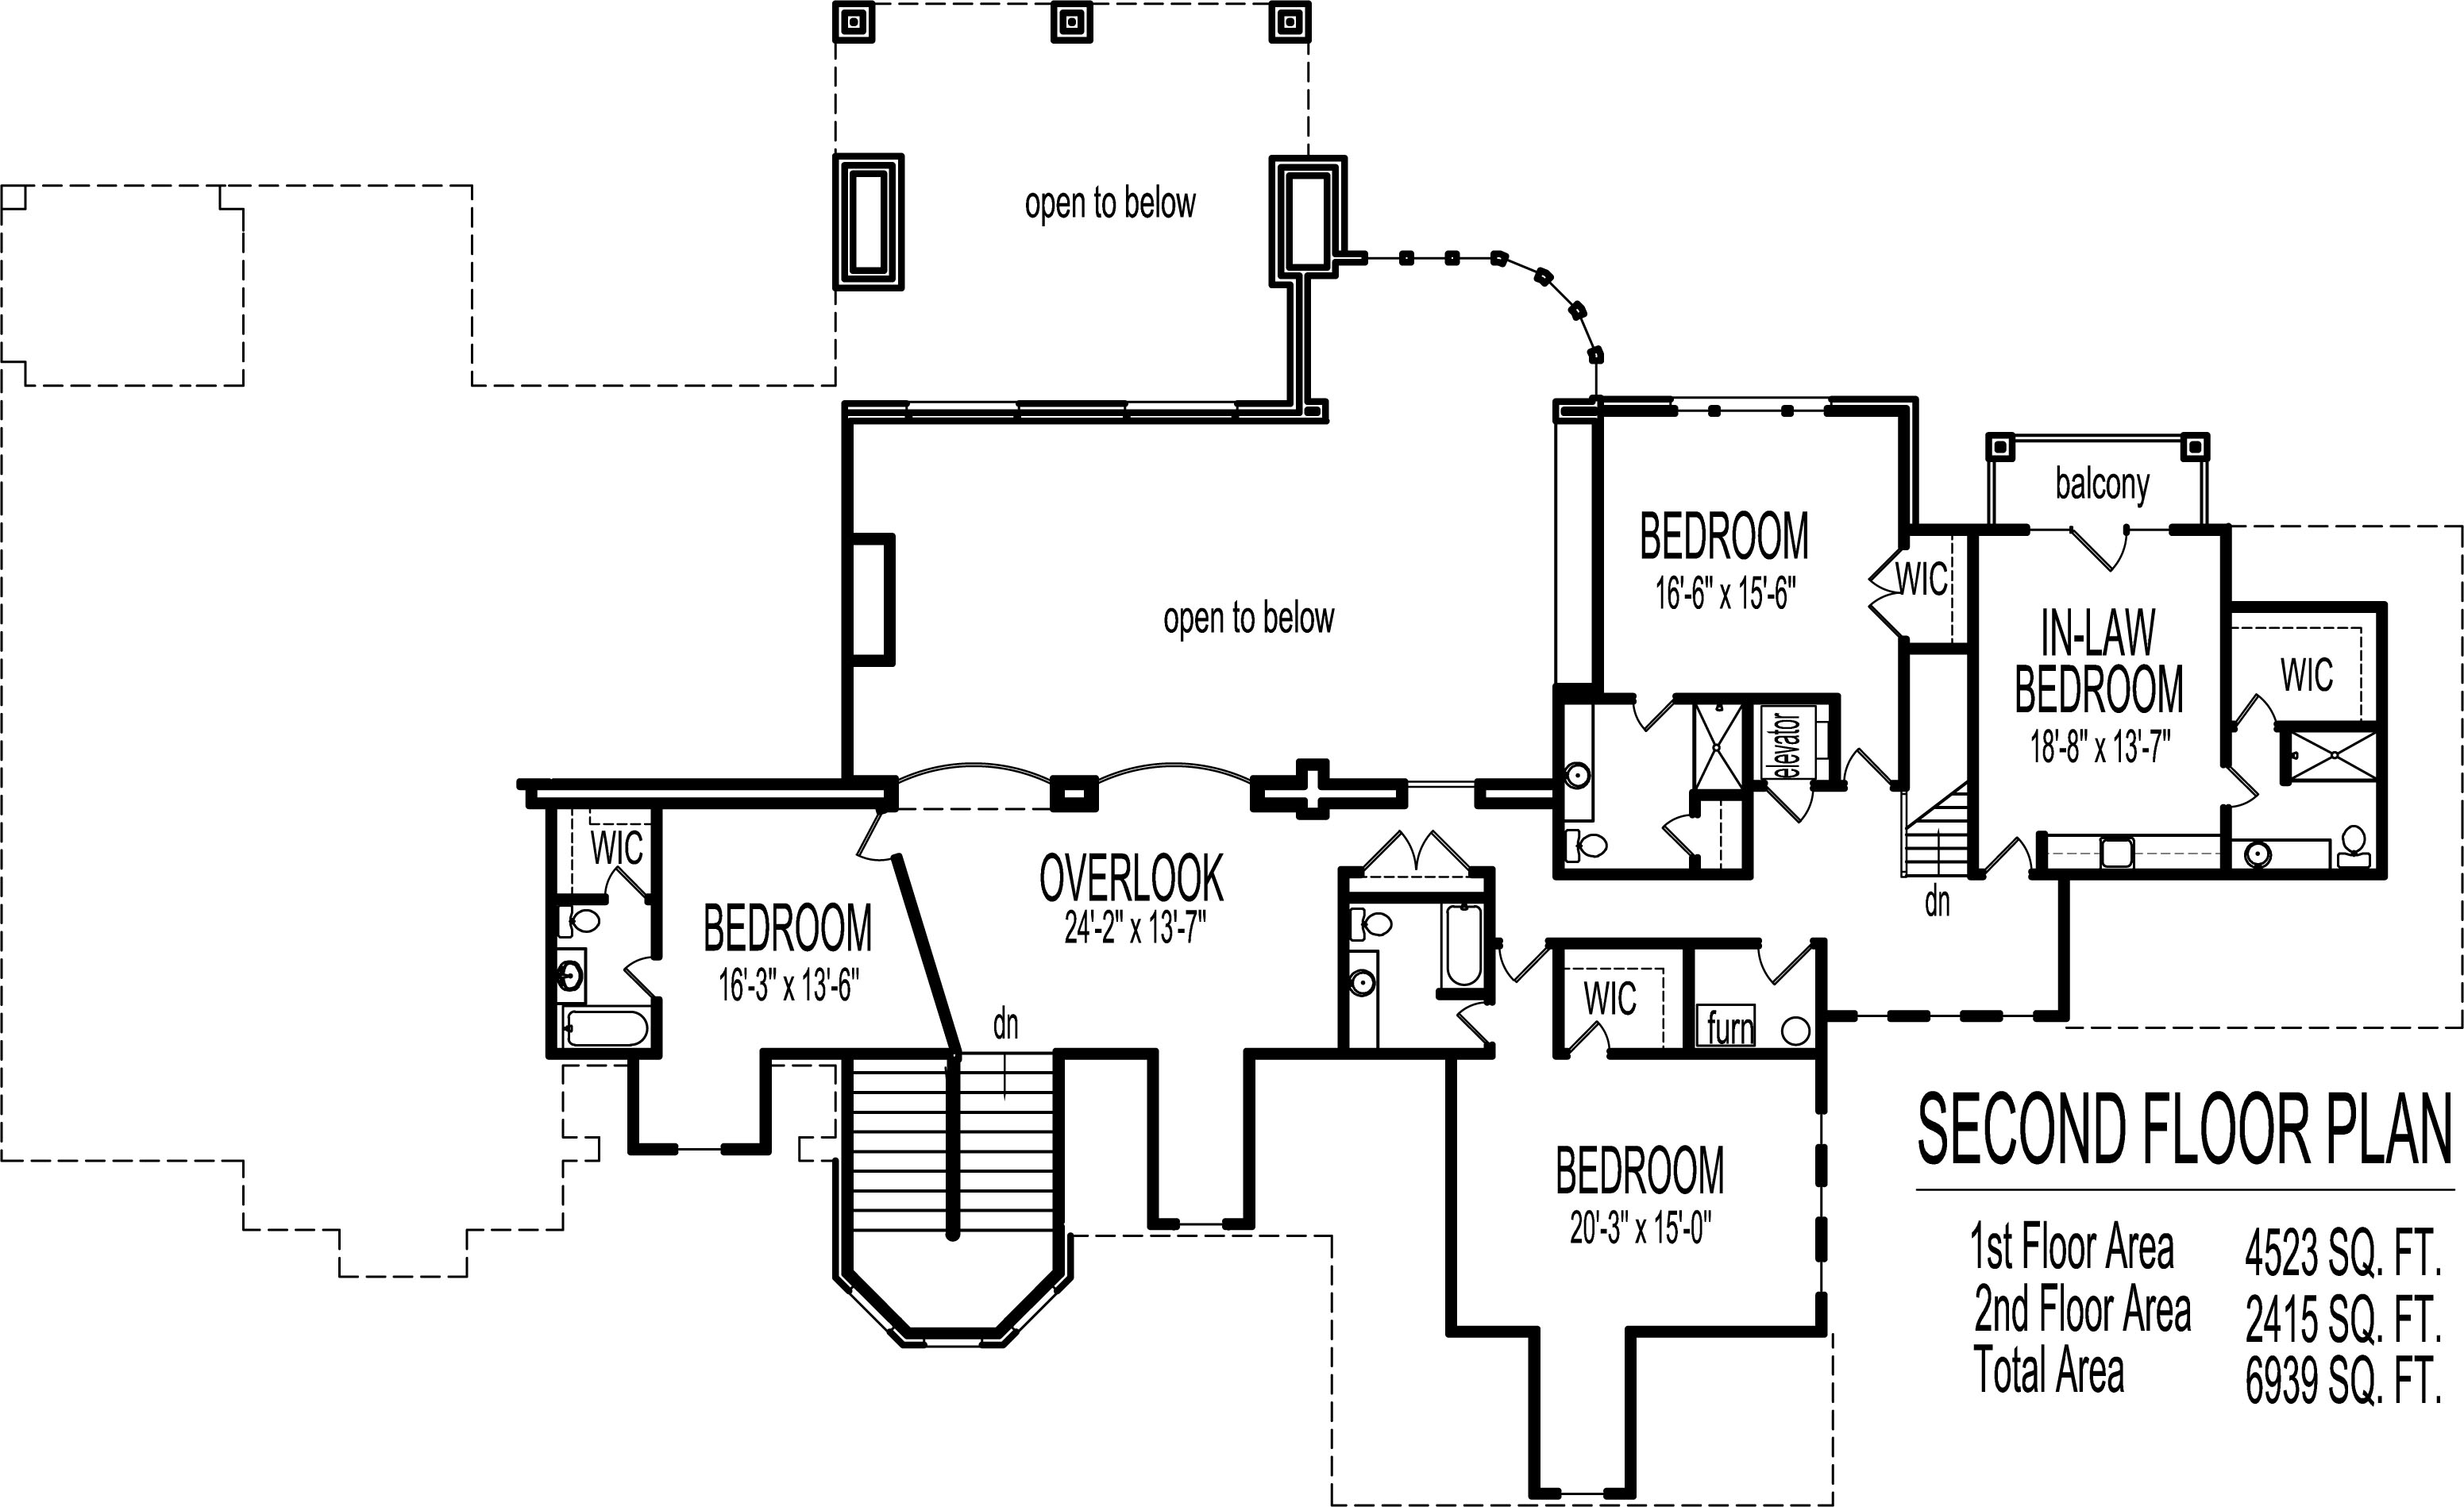 Mansion house floor plans blueprints 6 bedroom 2 story 10000 sq ft 6 bedroom 2 floor house plans patterson newark new jersey city elizabeth bridgeport new haven connecticut malvernweather